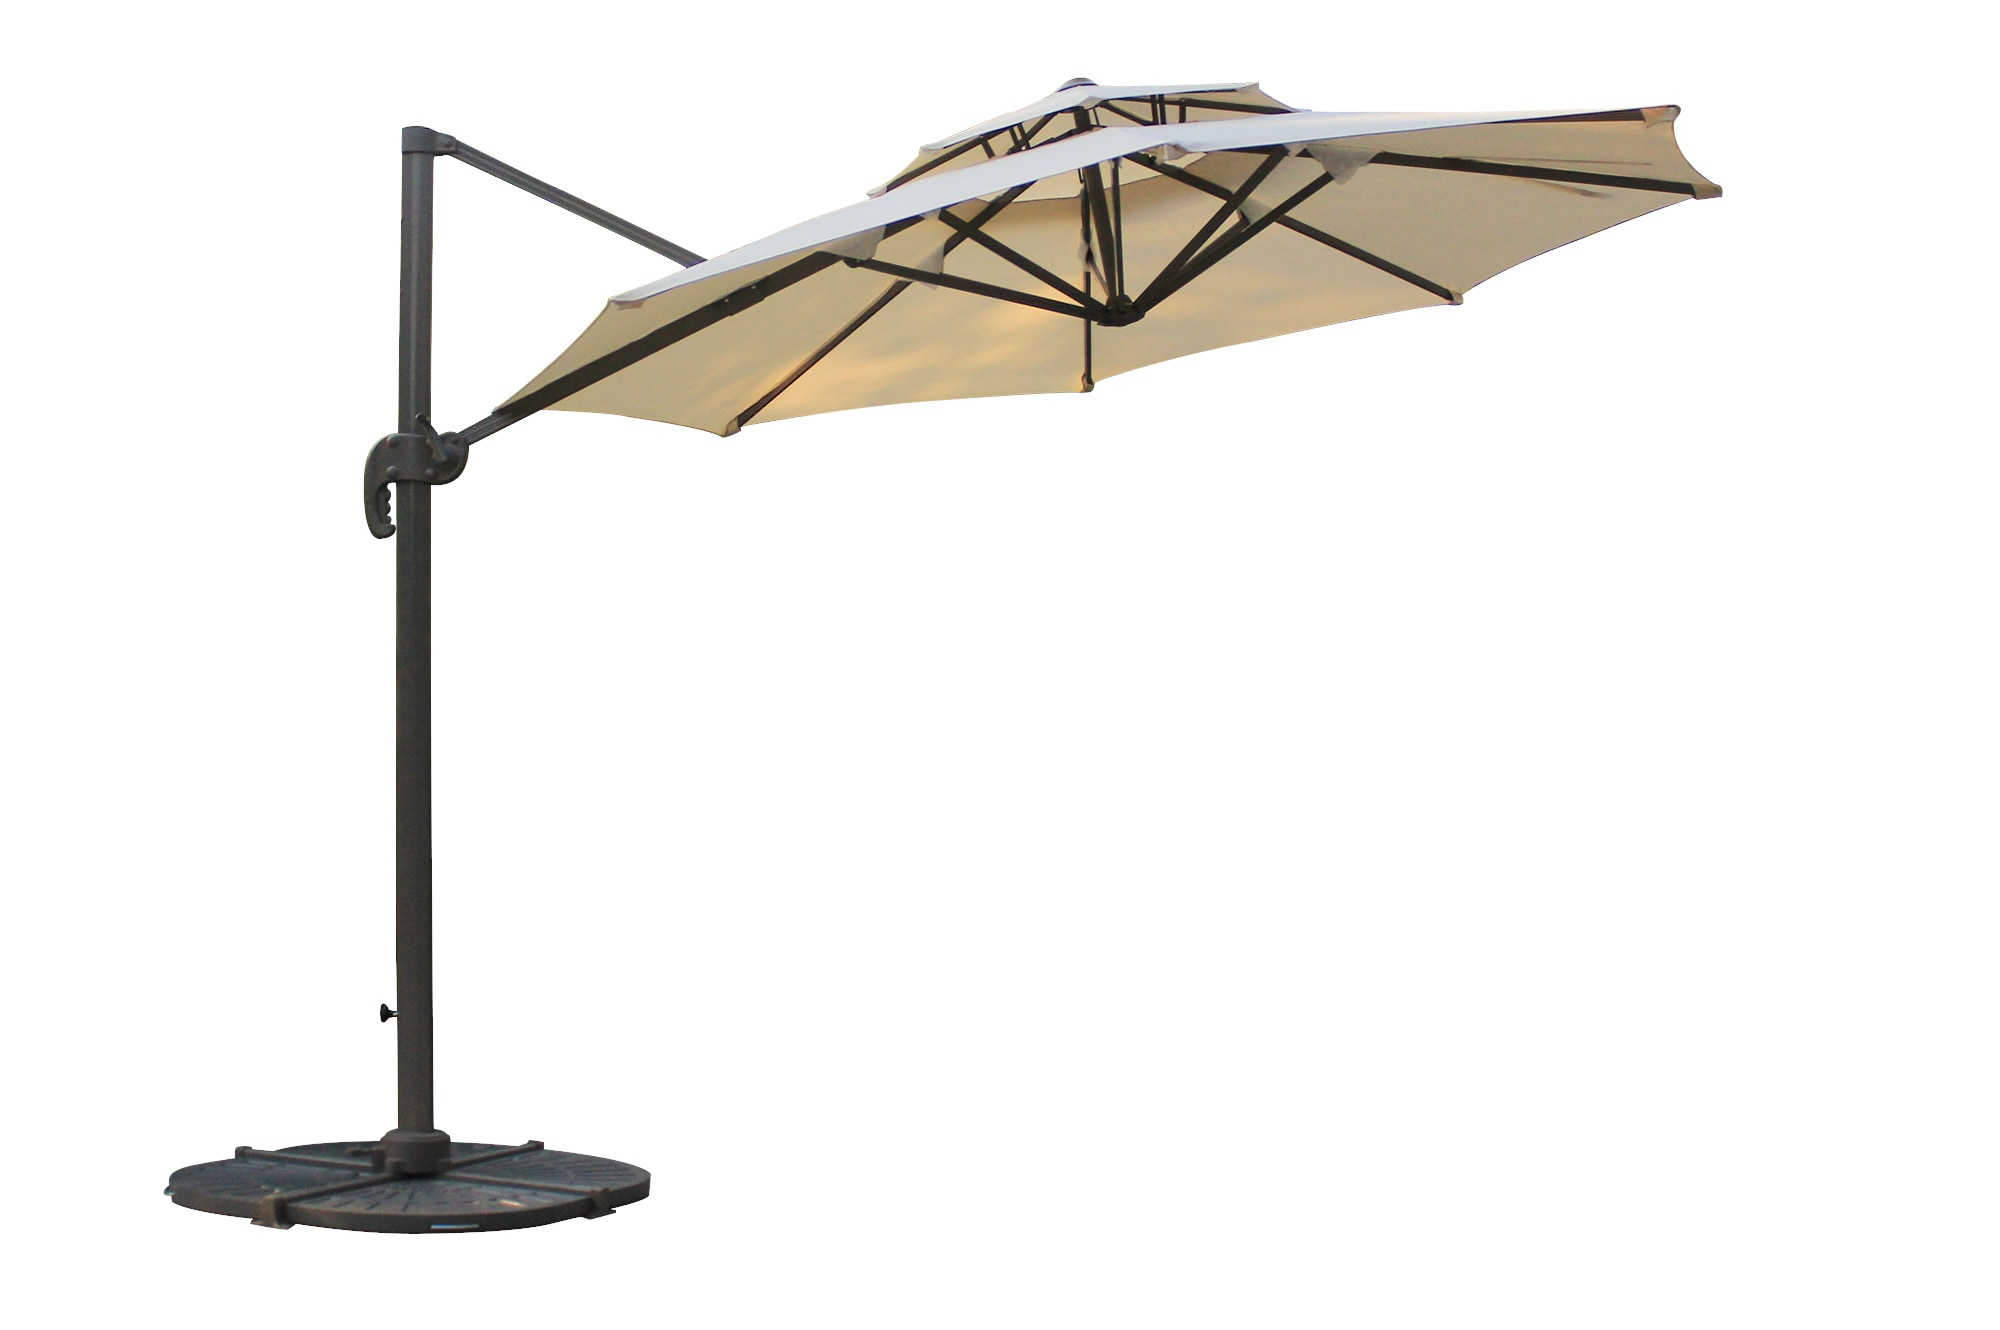 Kontiki Shade Amp Cooling Offset Patio Umbrellas 10 Ft Round